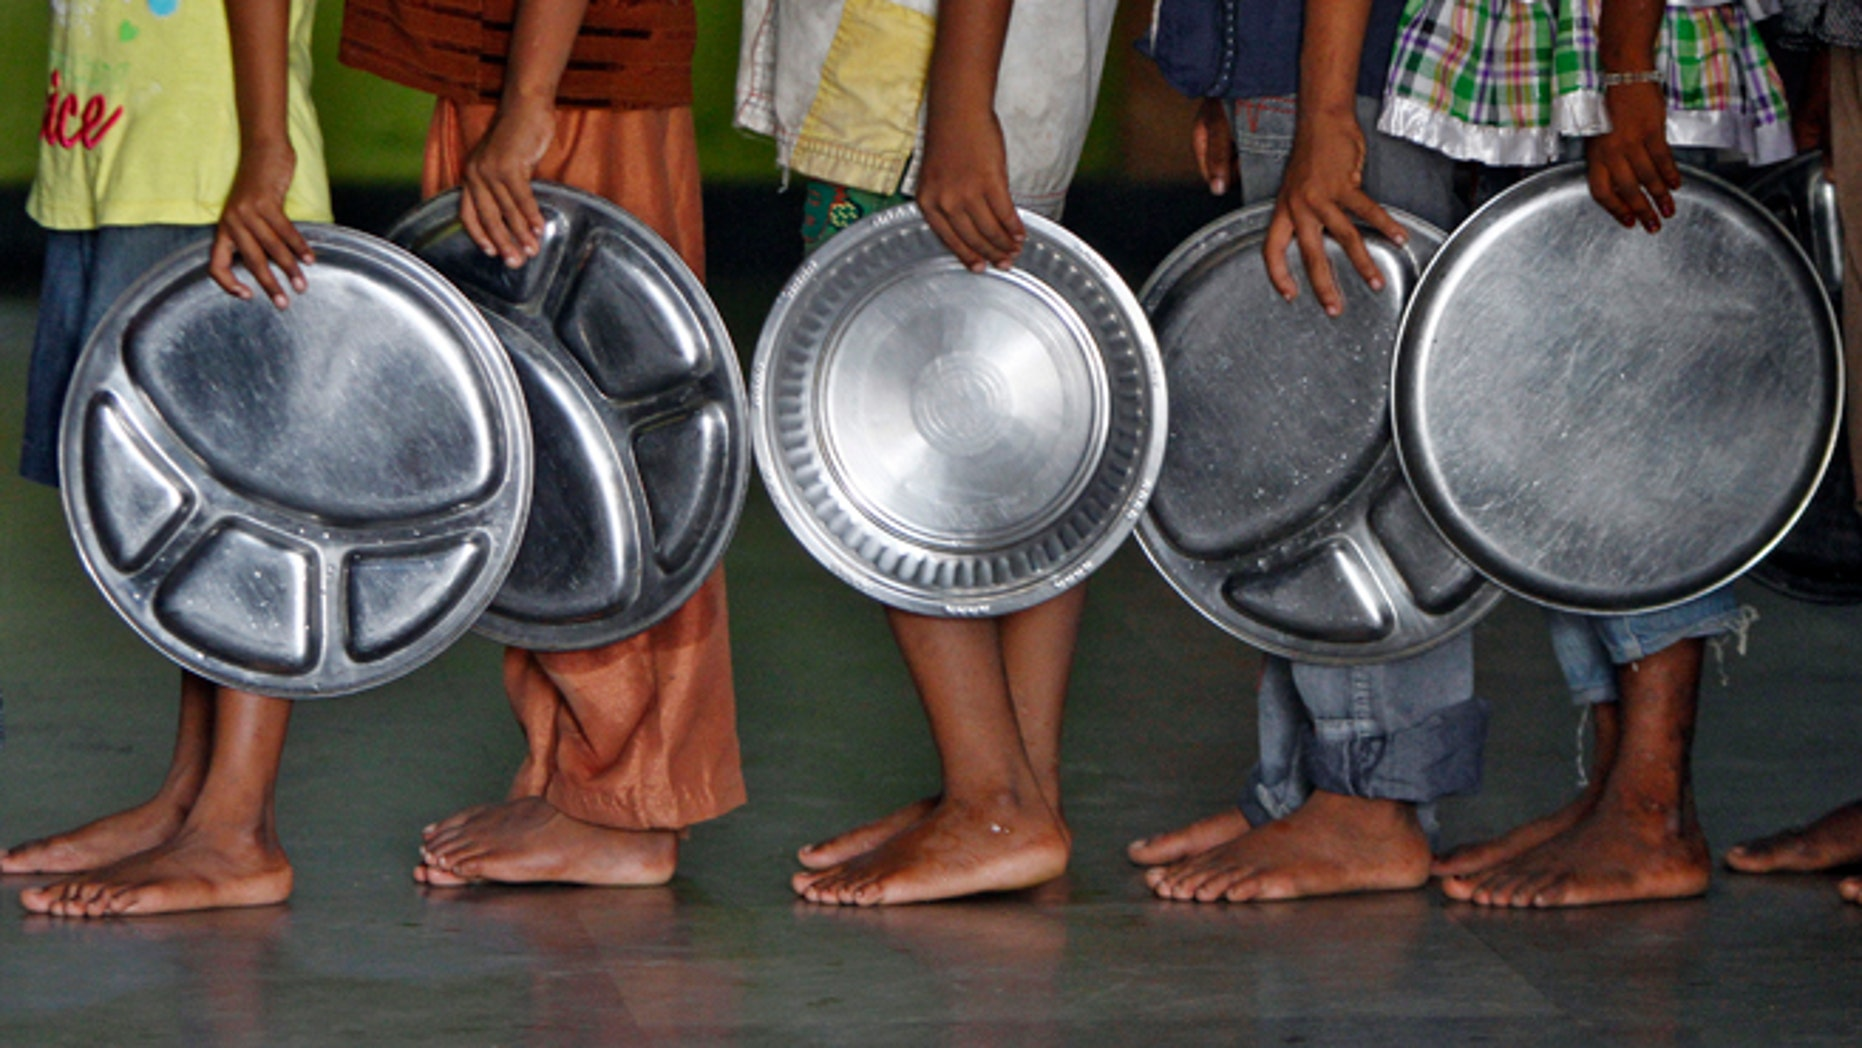 Children holding plates wait in a queue to receive food at an orphanage run by a non-governmental organisation on World Hunger Day, in the southern Indian city of Chennai May 28, 2014. REUTERS/Babu (INDIA - Tags: SOCIETY) - RTR3R82F